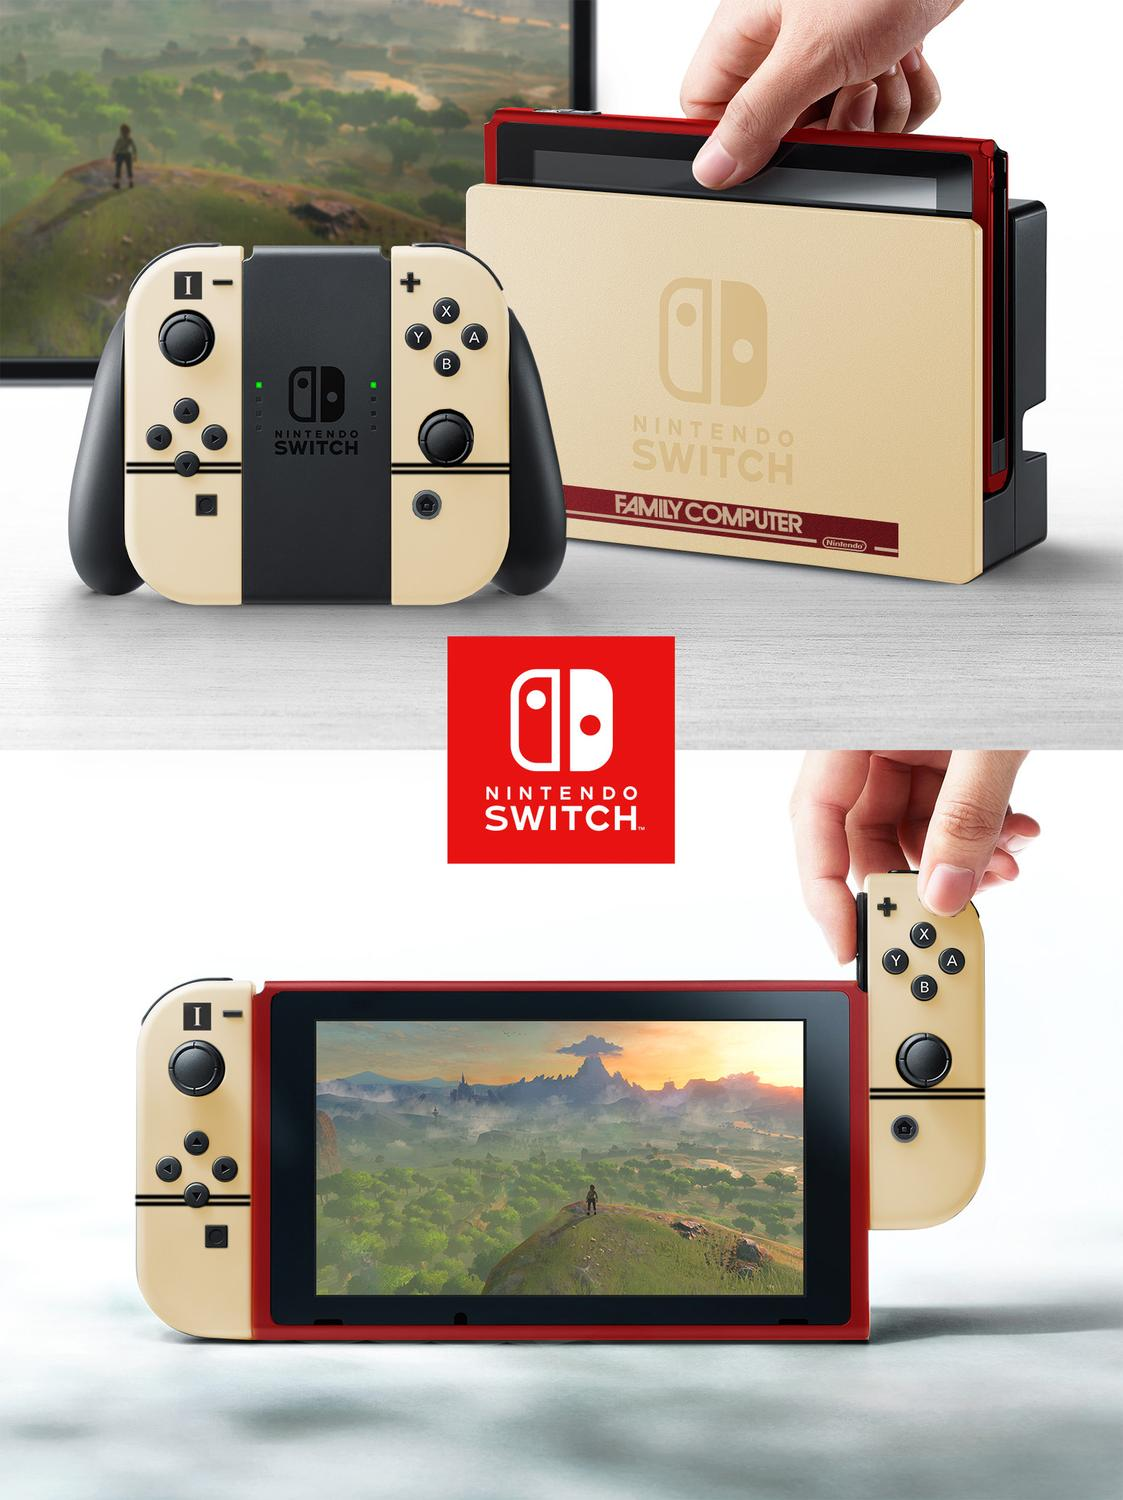 Look how easy it would be for Nintendo to make the Switch